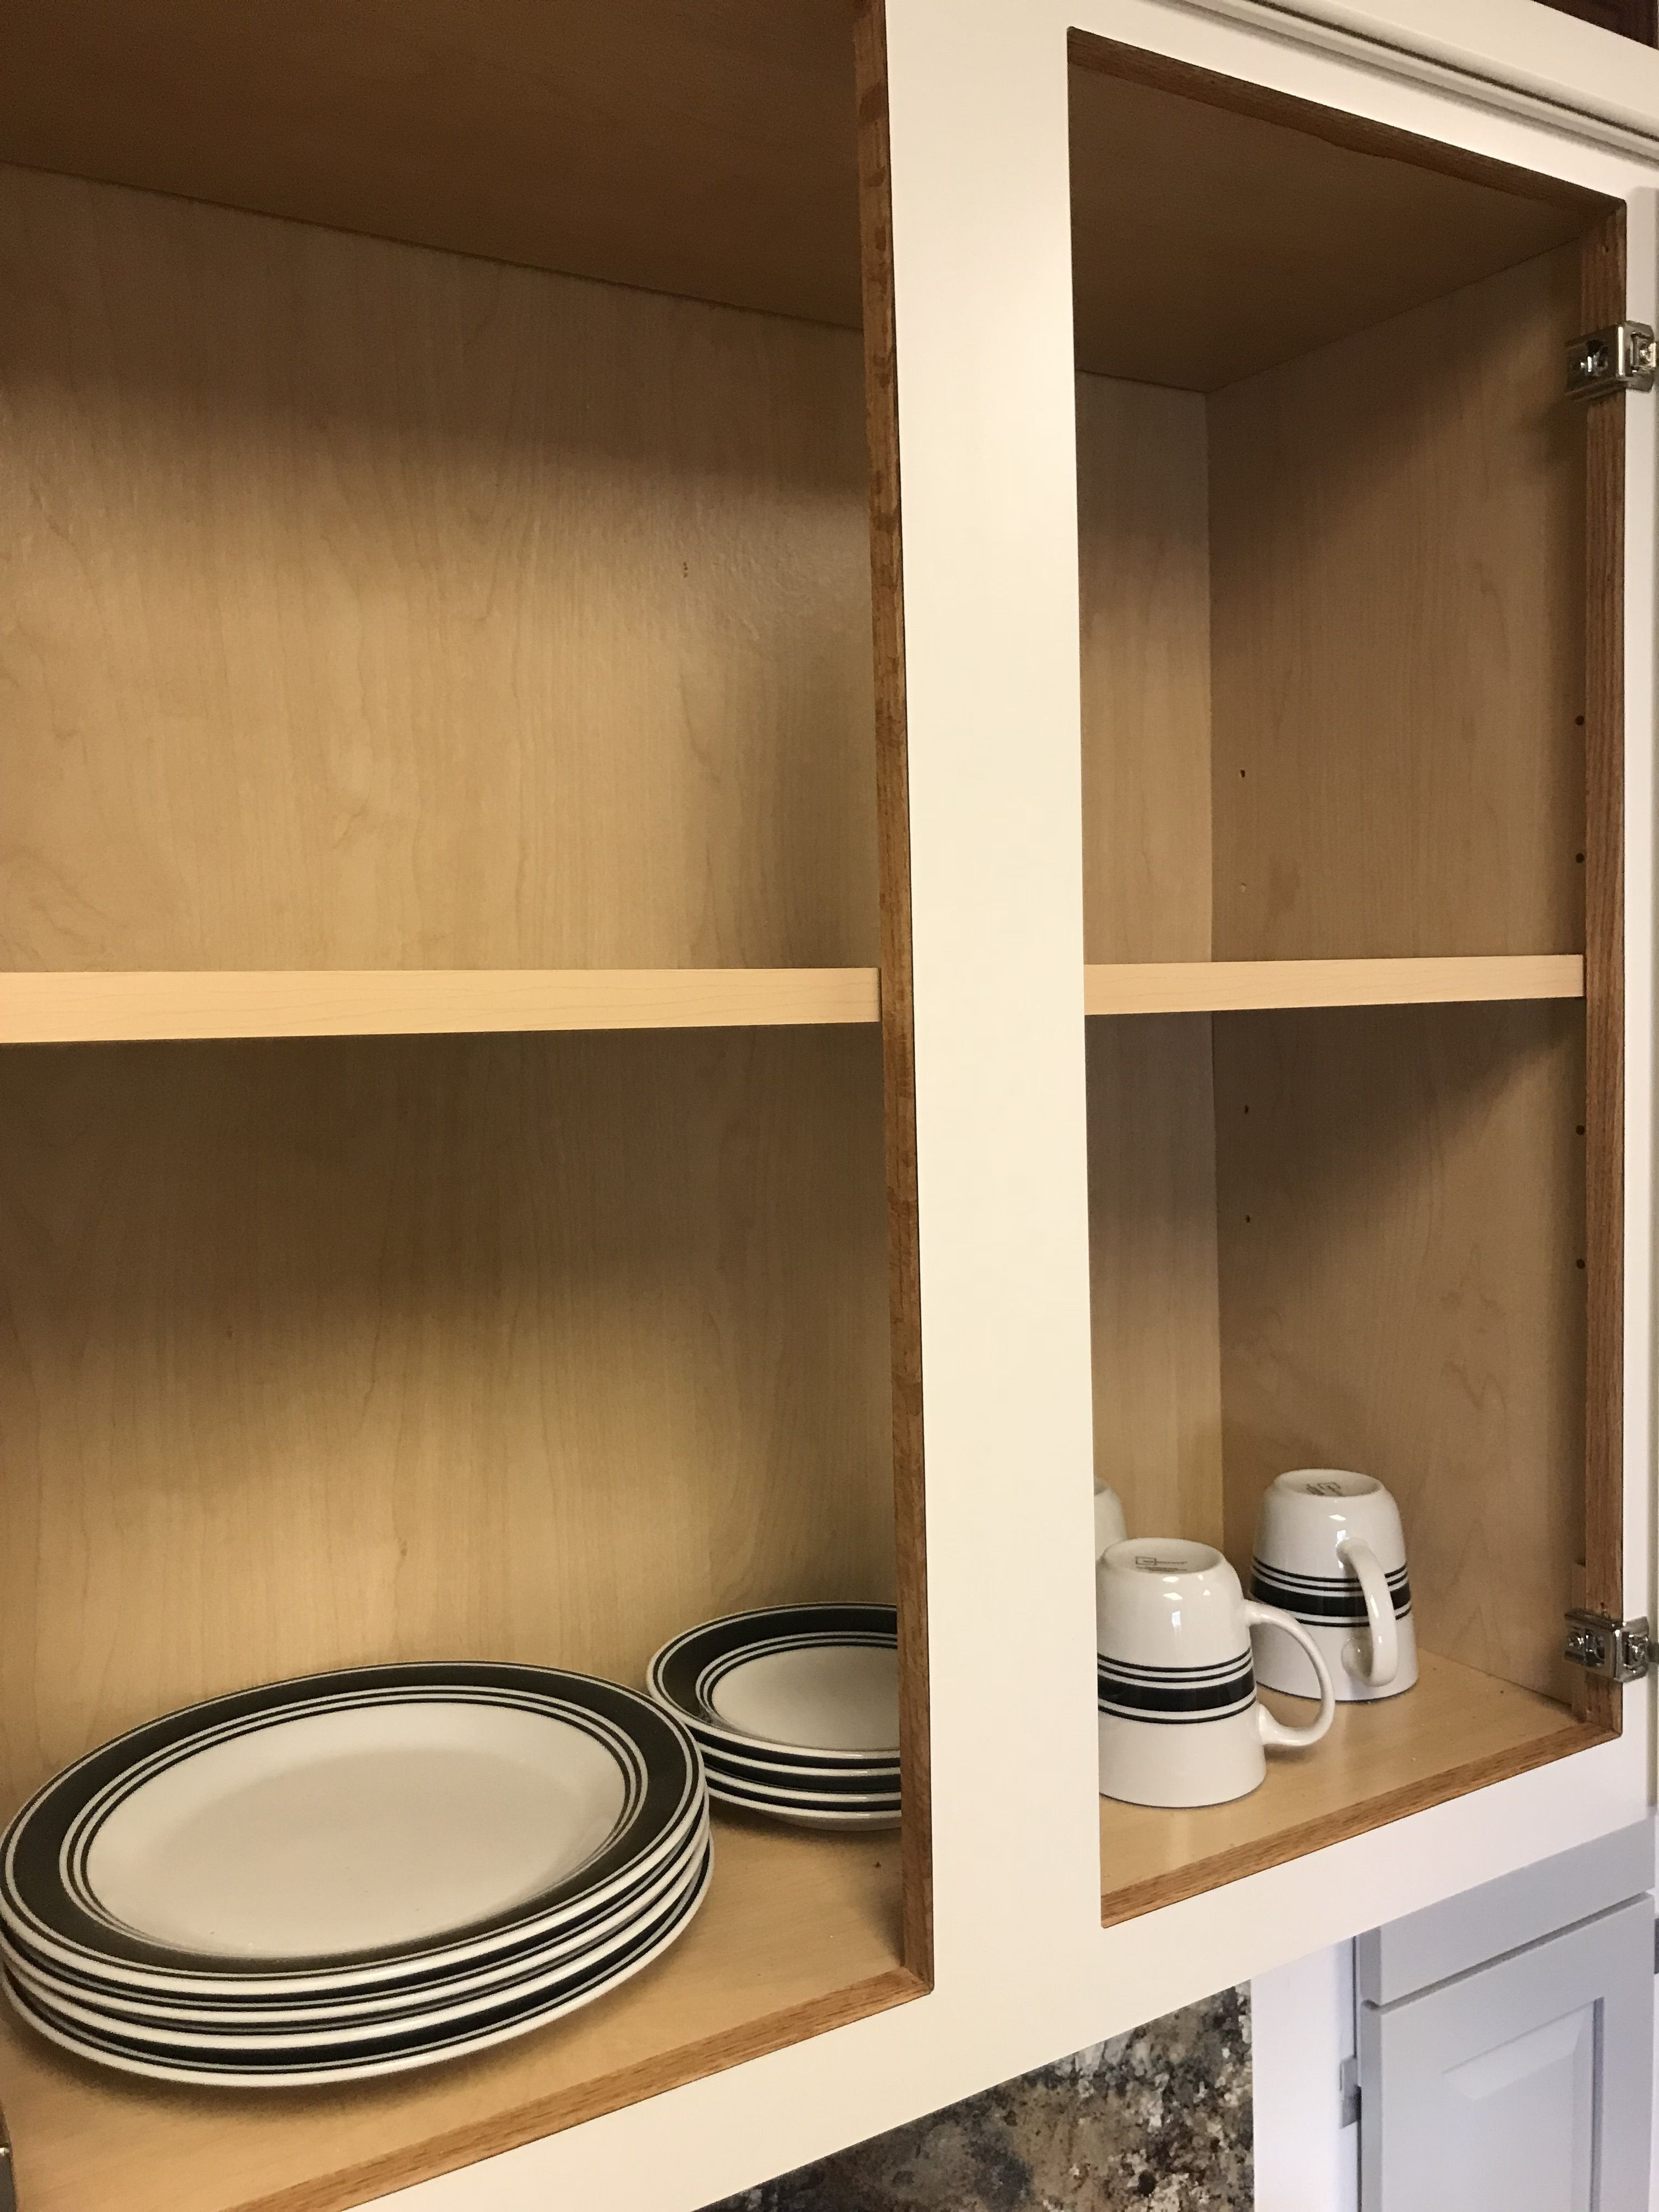 Cheap Cabinet Doors Replacement Unique 30 Cheap Kitchen Cabinet Add S You Can Diy